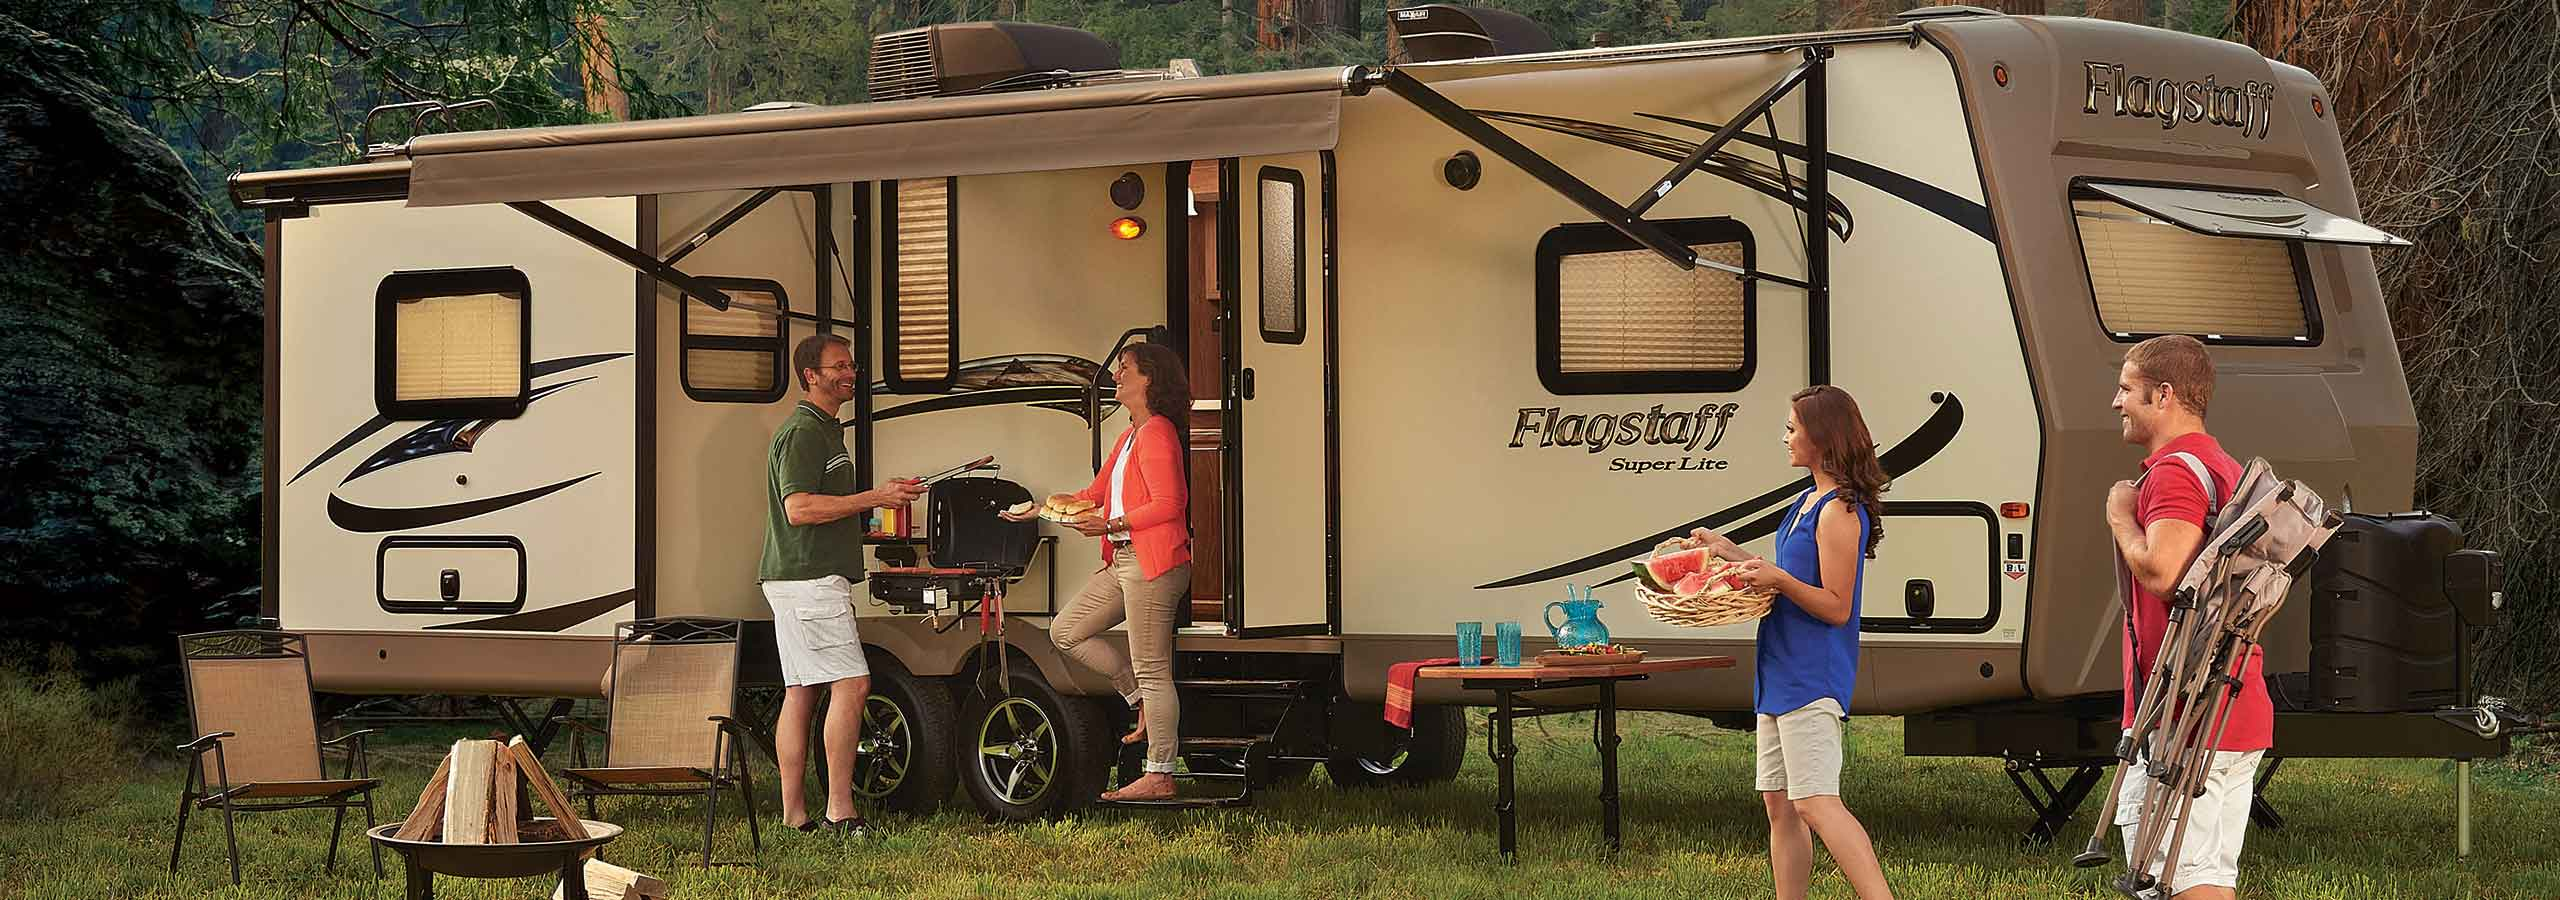 flagstaff campers rvs for sale western nc